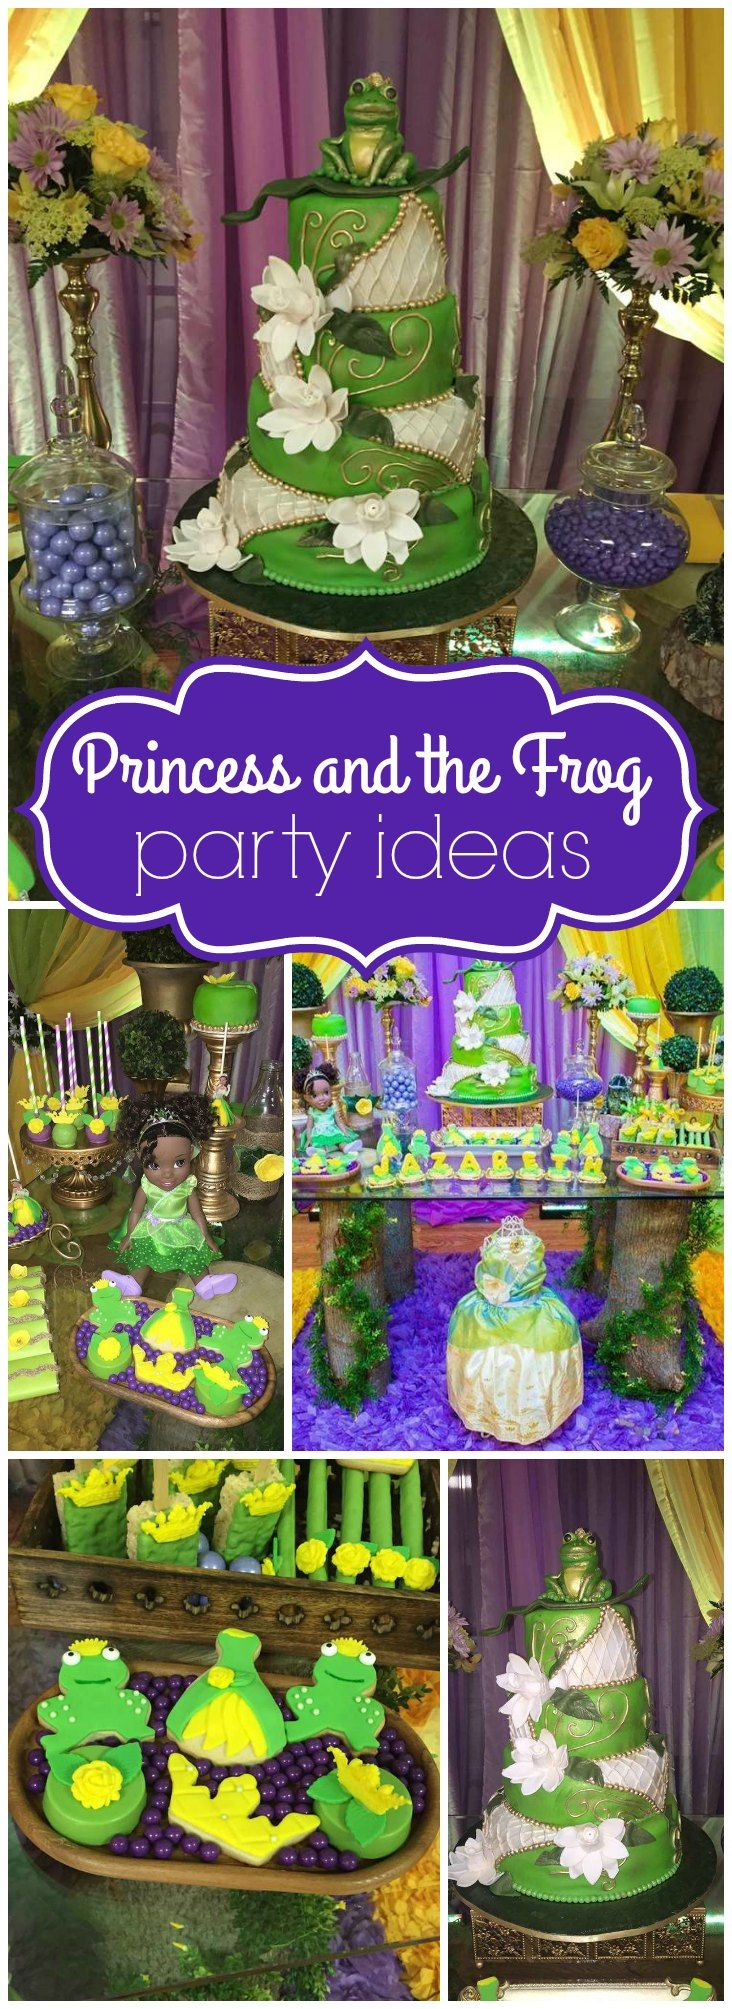 So many stunning details at this Princess and the Frog party! See more party ideas at CatchMyParty.com!